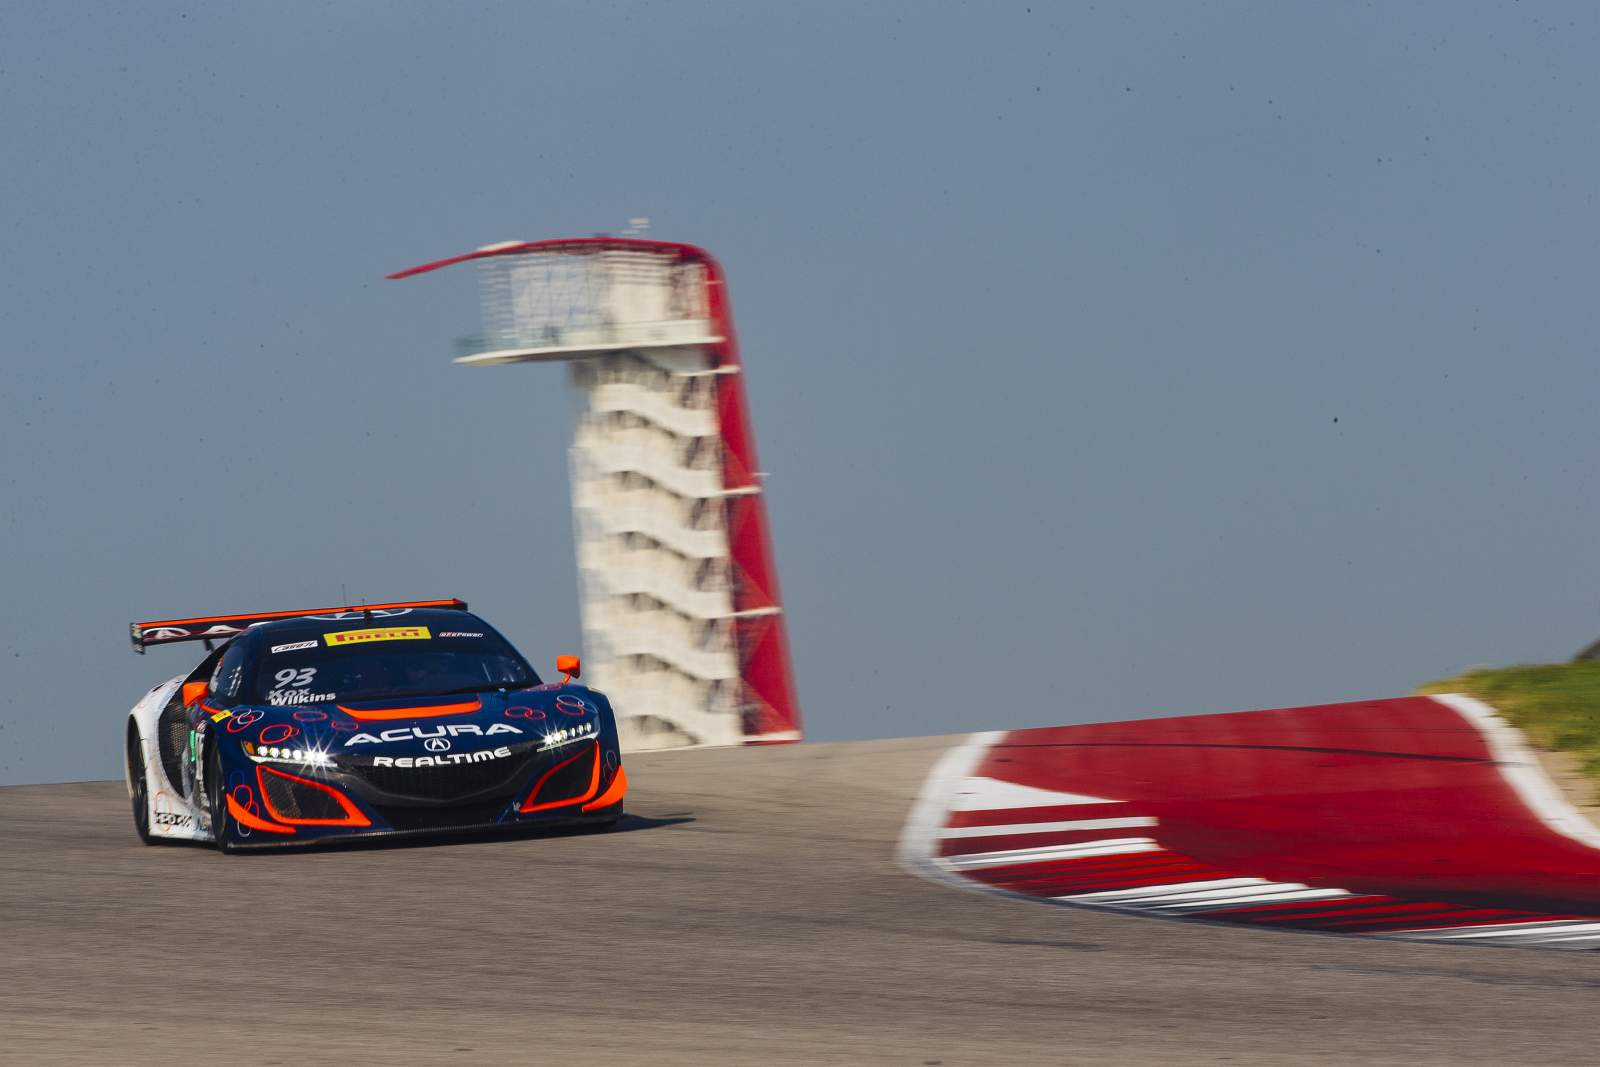 peter-kox-realtime-racing-pirelli-world-challenge-cota--001